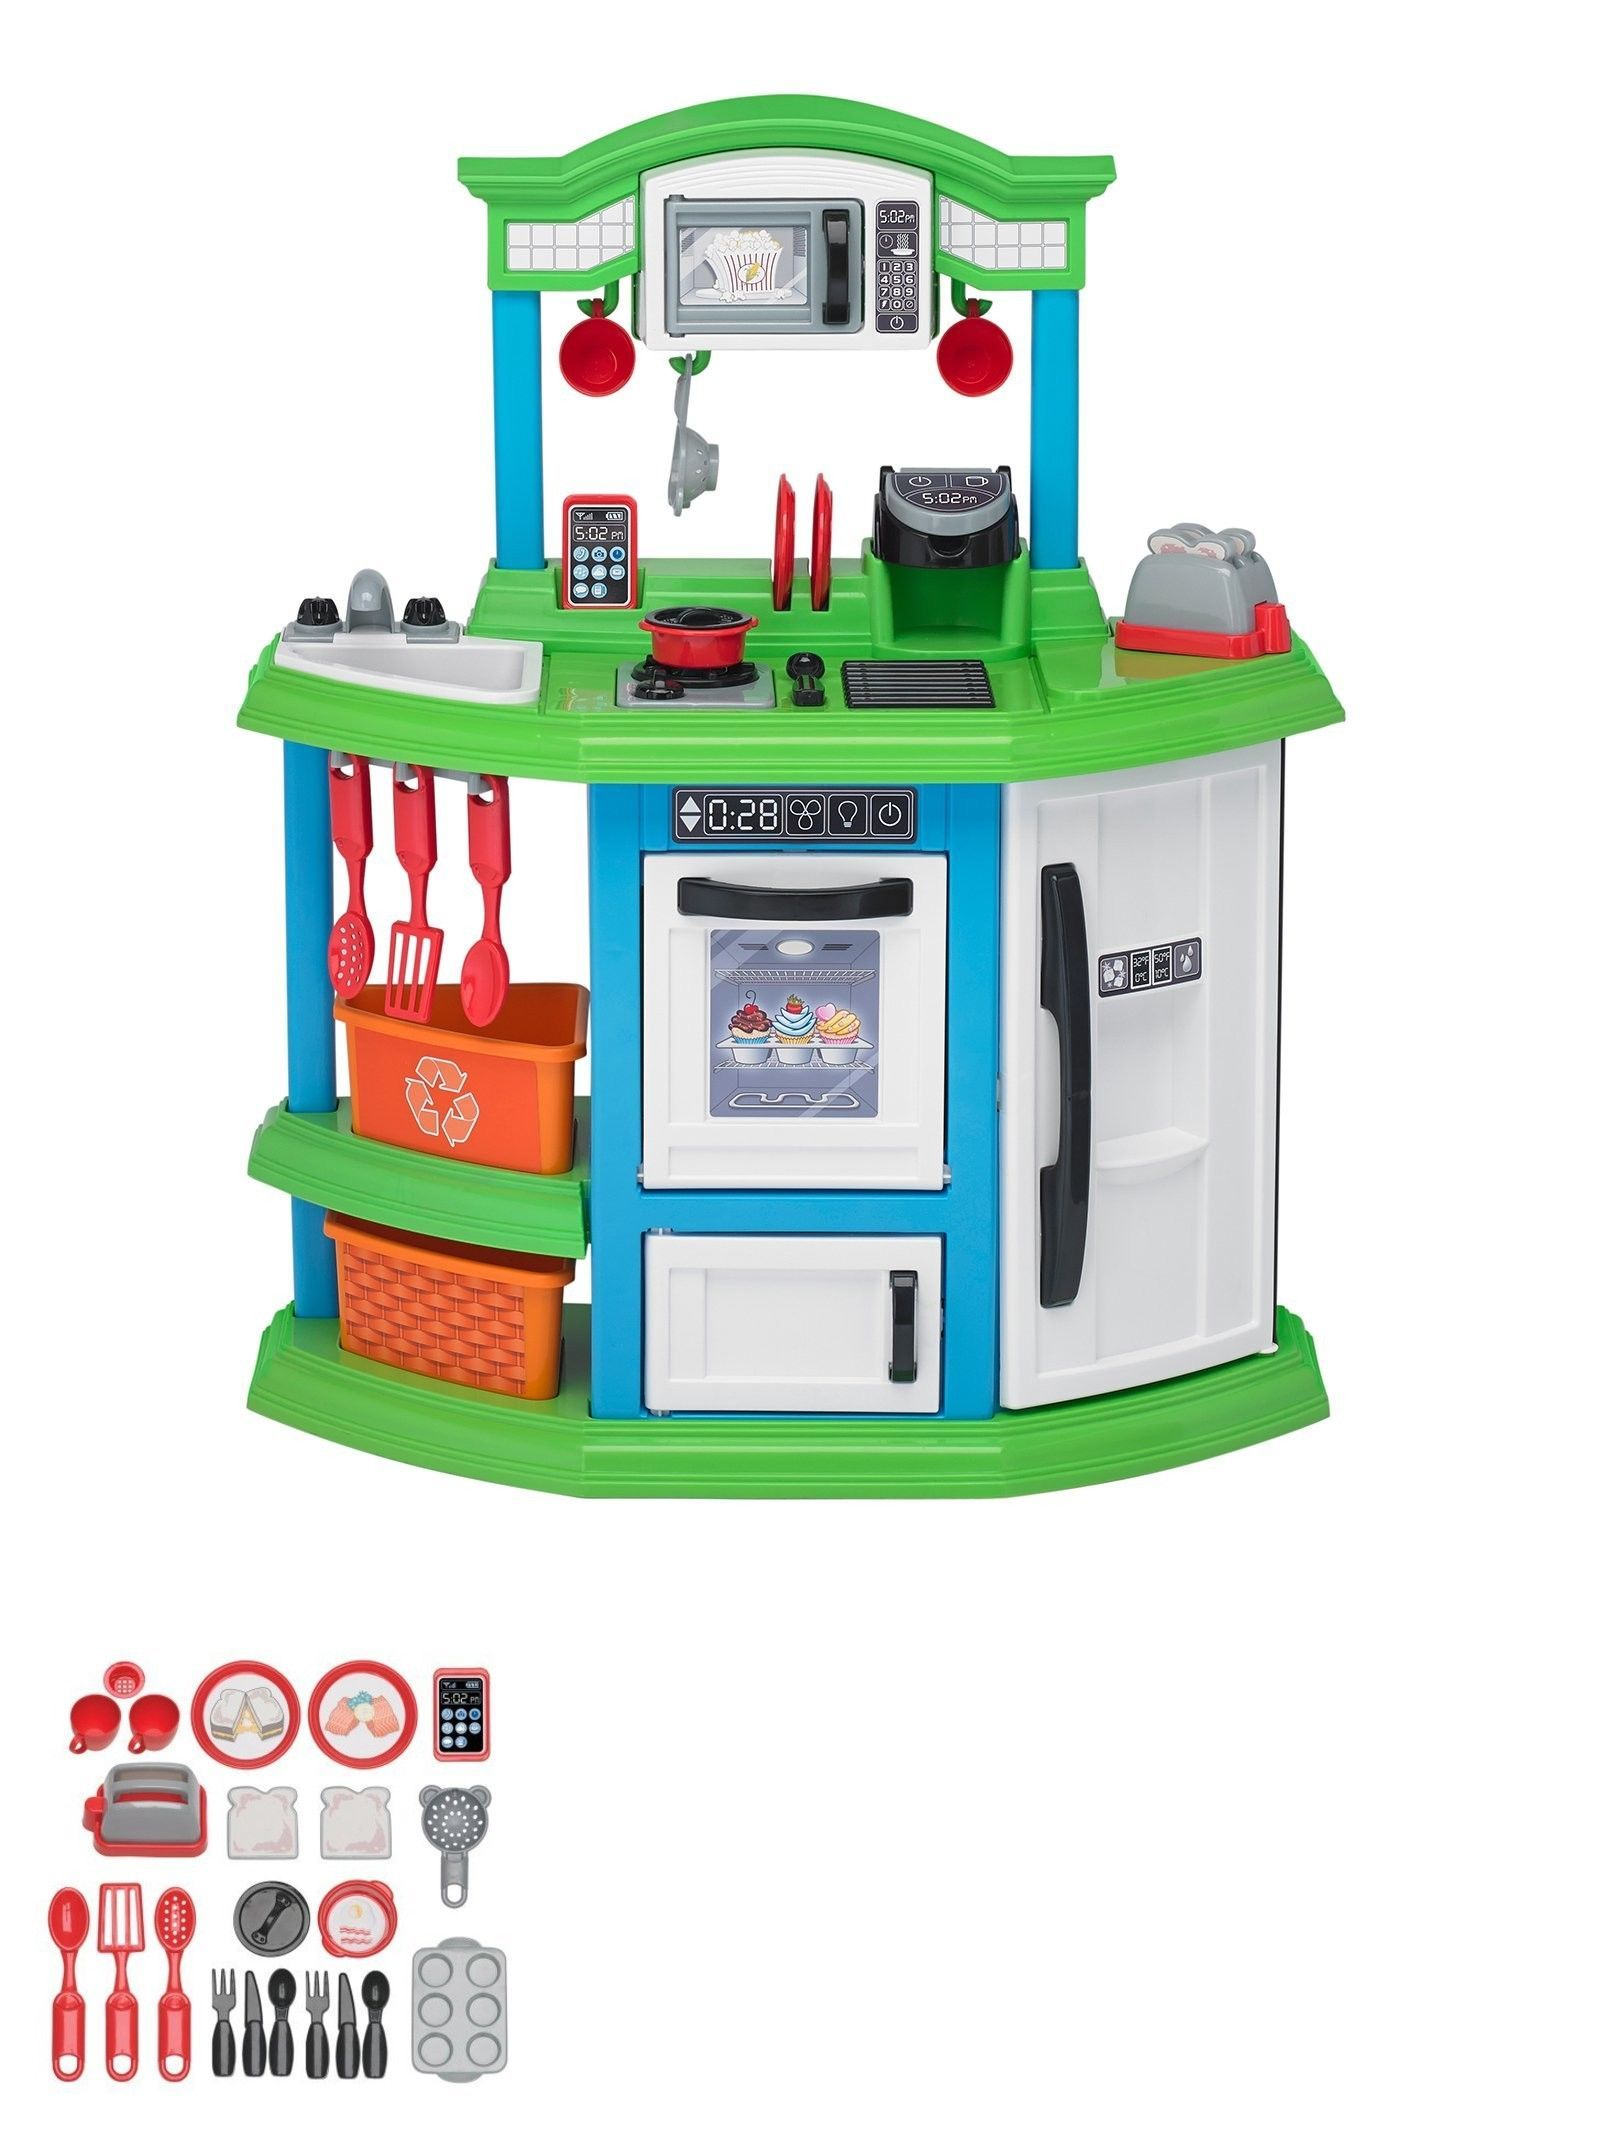 Toys for kids kitchen set  Kitchens  Kids Pretend Play Kitchen Set Cooking Food Toy